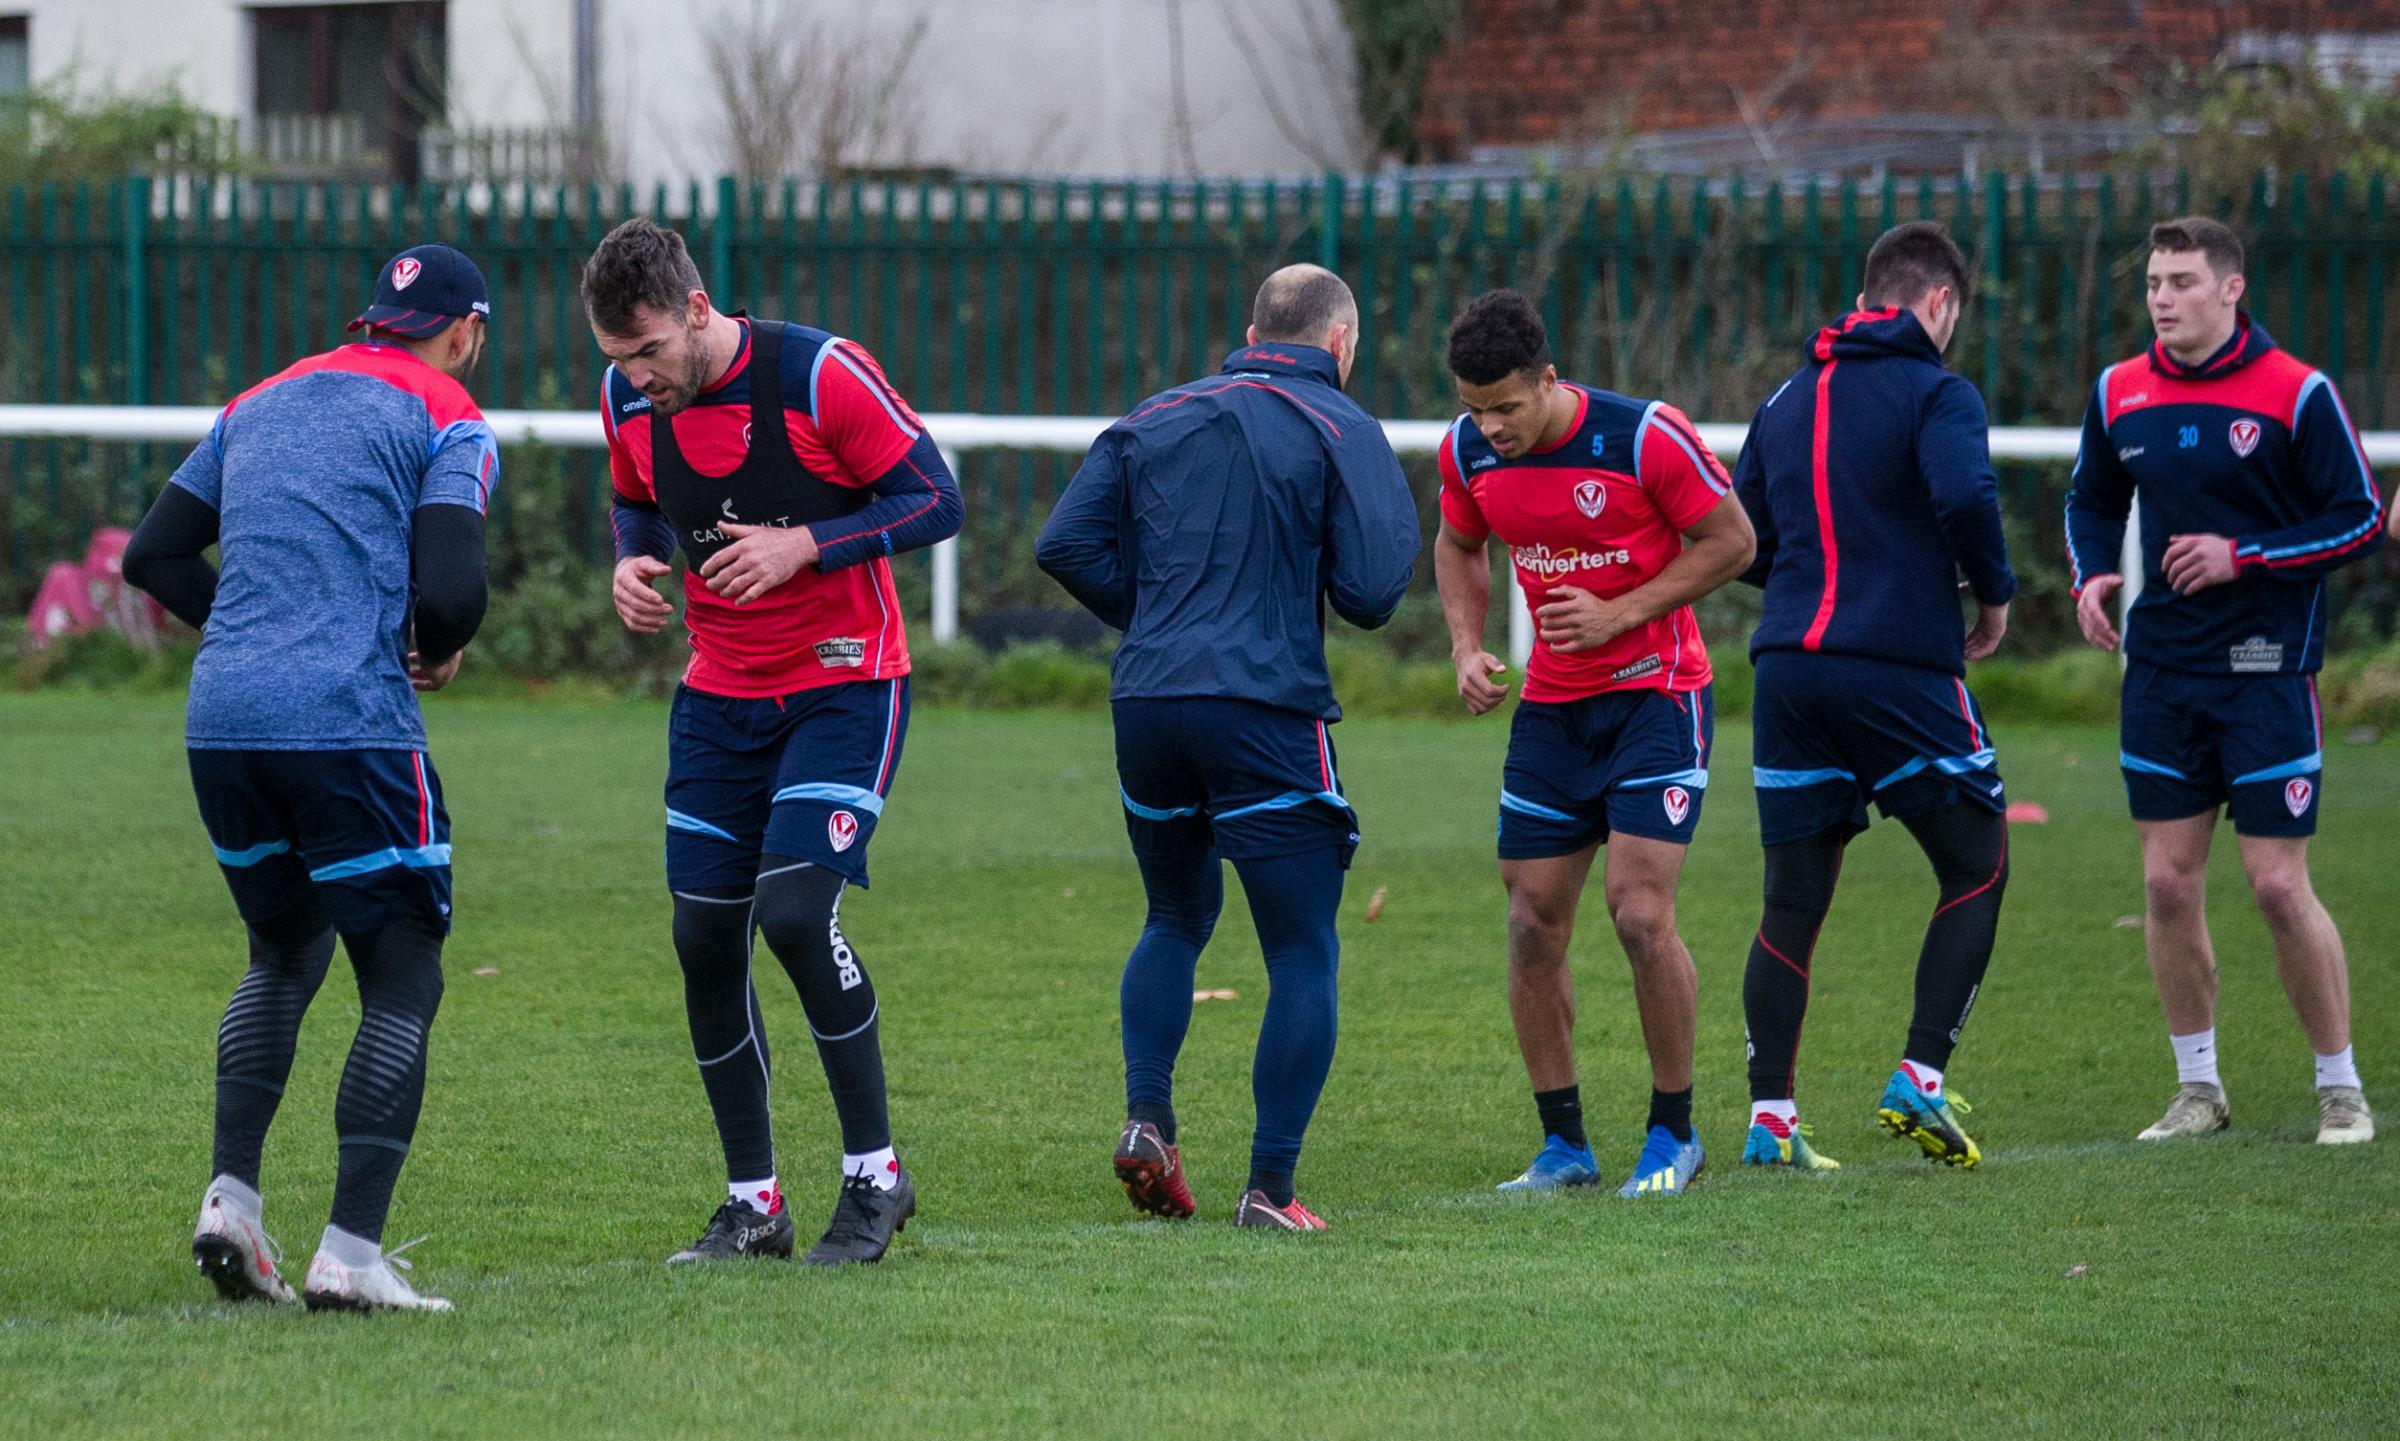 Saints in traning foe the 2019 Super League campaign